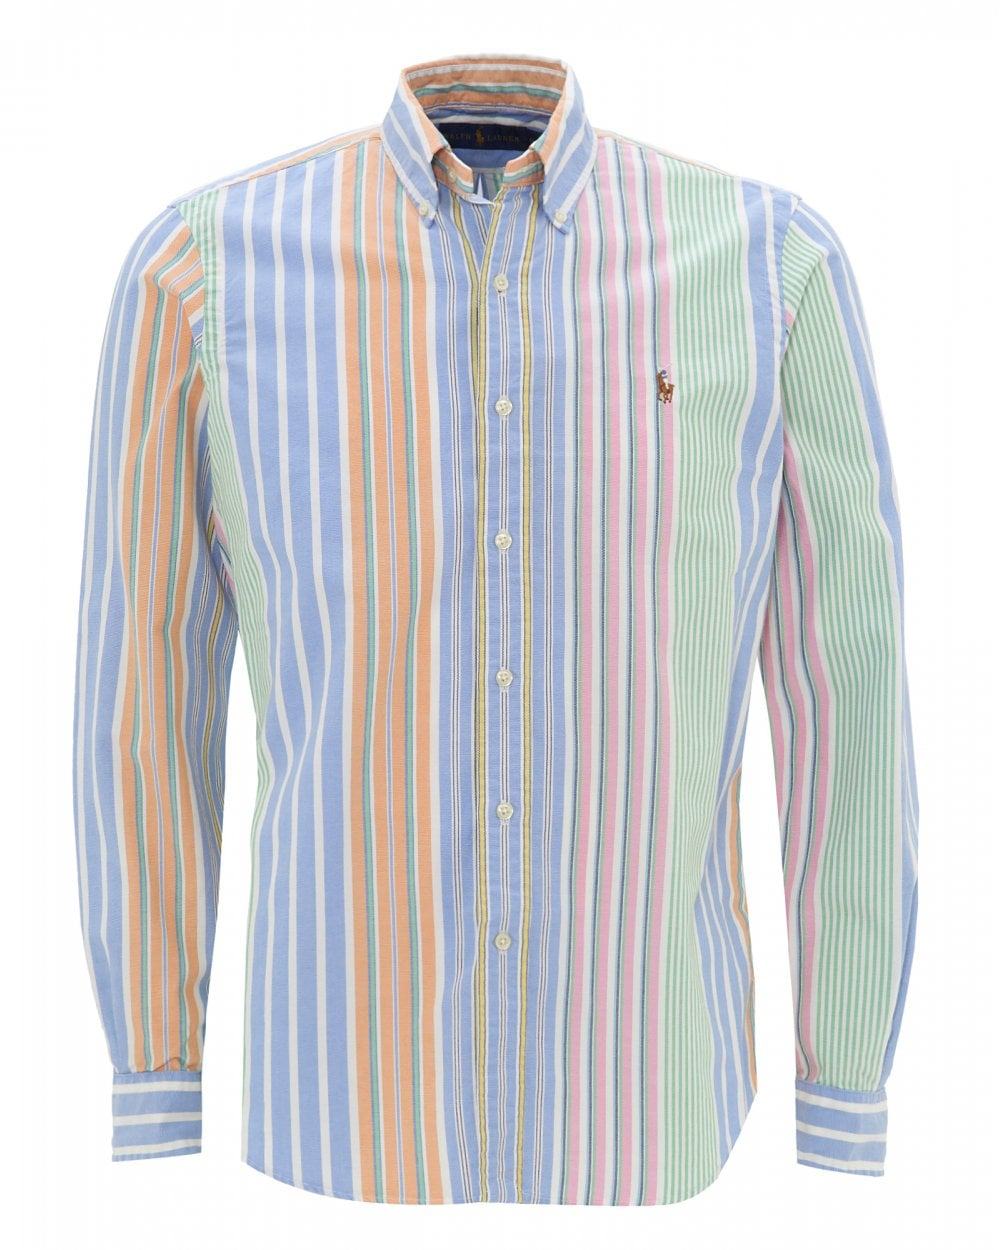 2cc4a6c3a Ralph Lauren Mens Classic Fit Striped Oxford Shirt